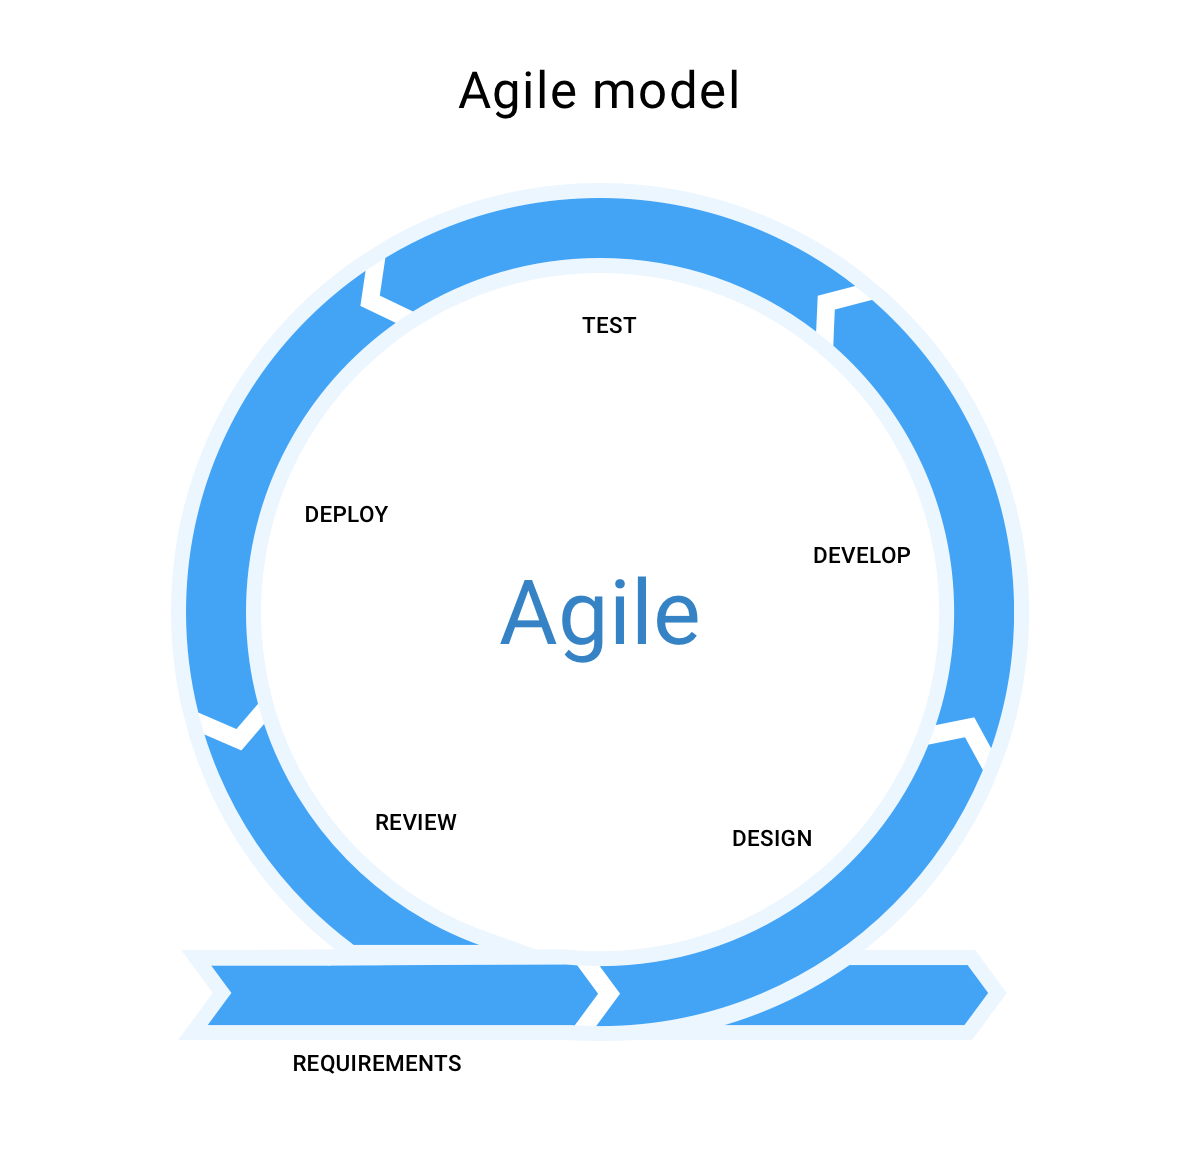 What is Agile model